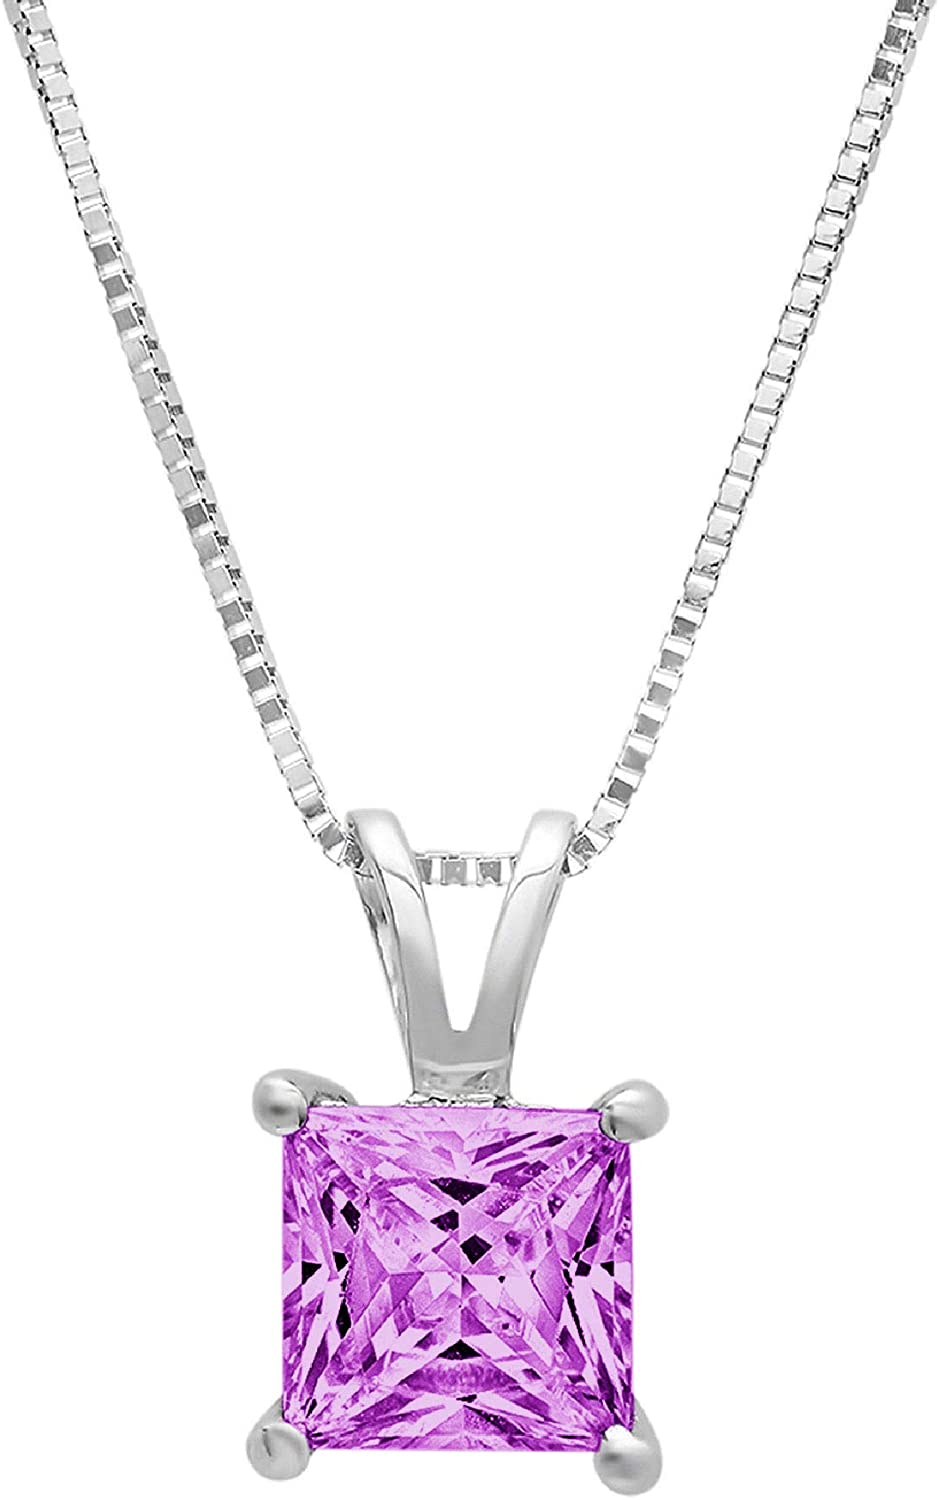 Clara Pucci 0.6 ct Brilliant Princess Cut Stunning Genuine Flawless Simulated Alexandrite Gemstone Solitaire Pendant Necklace With 18